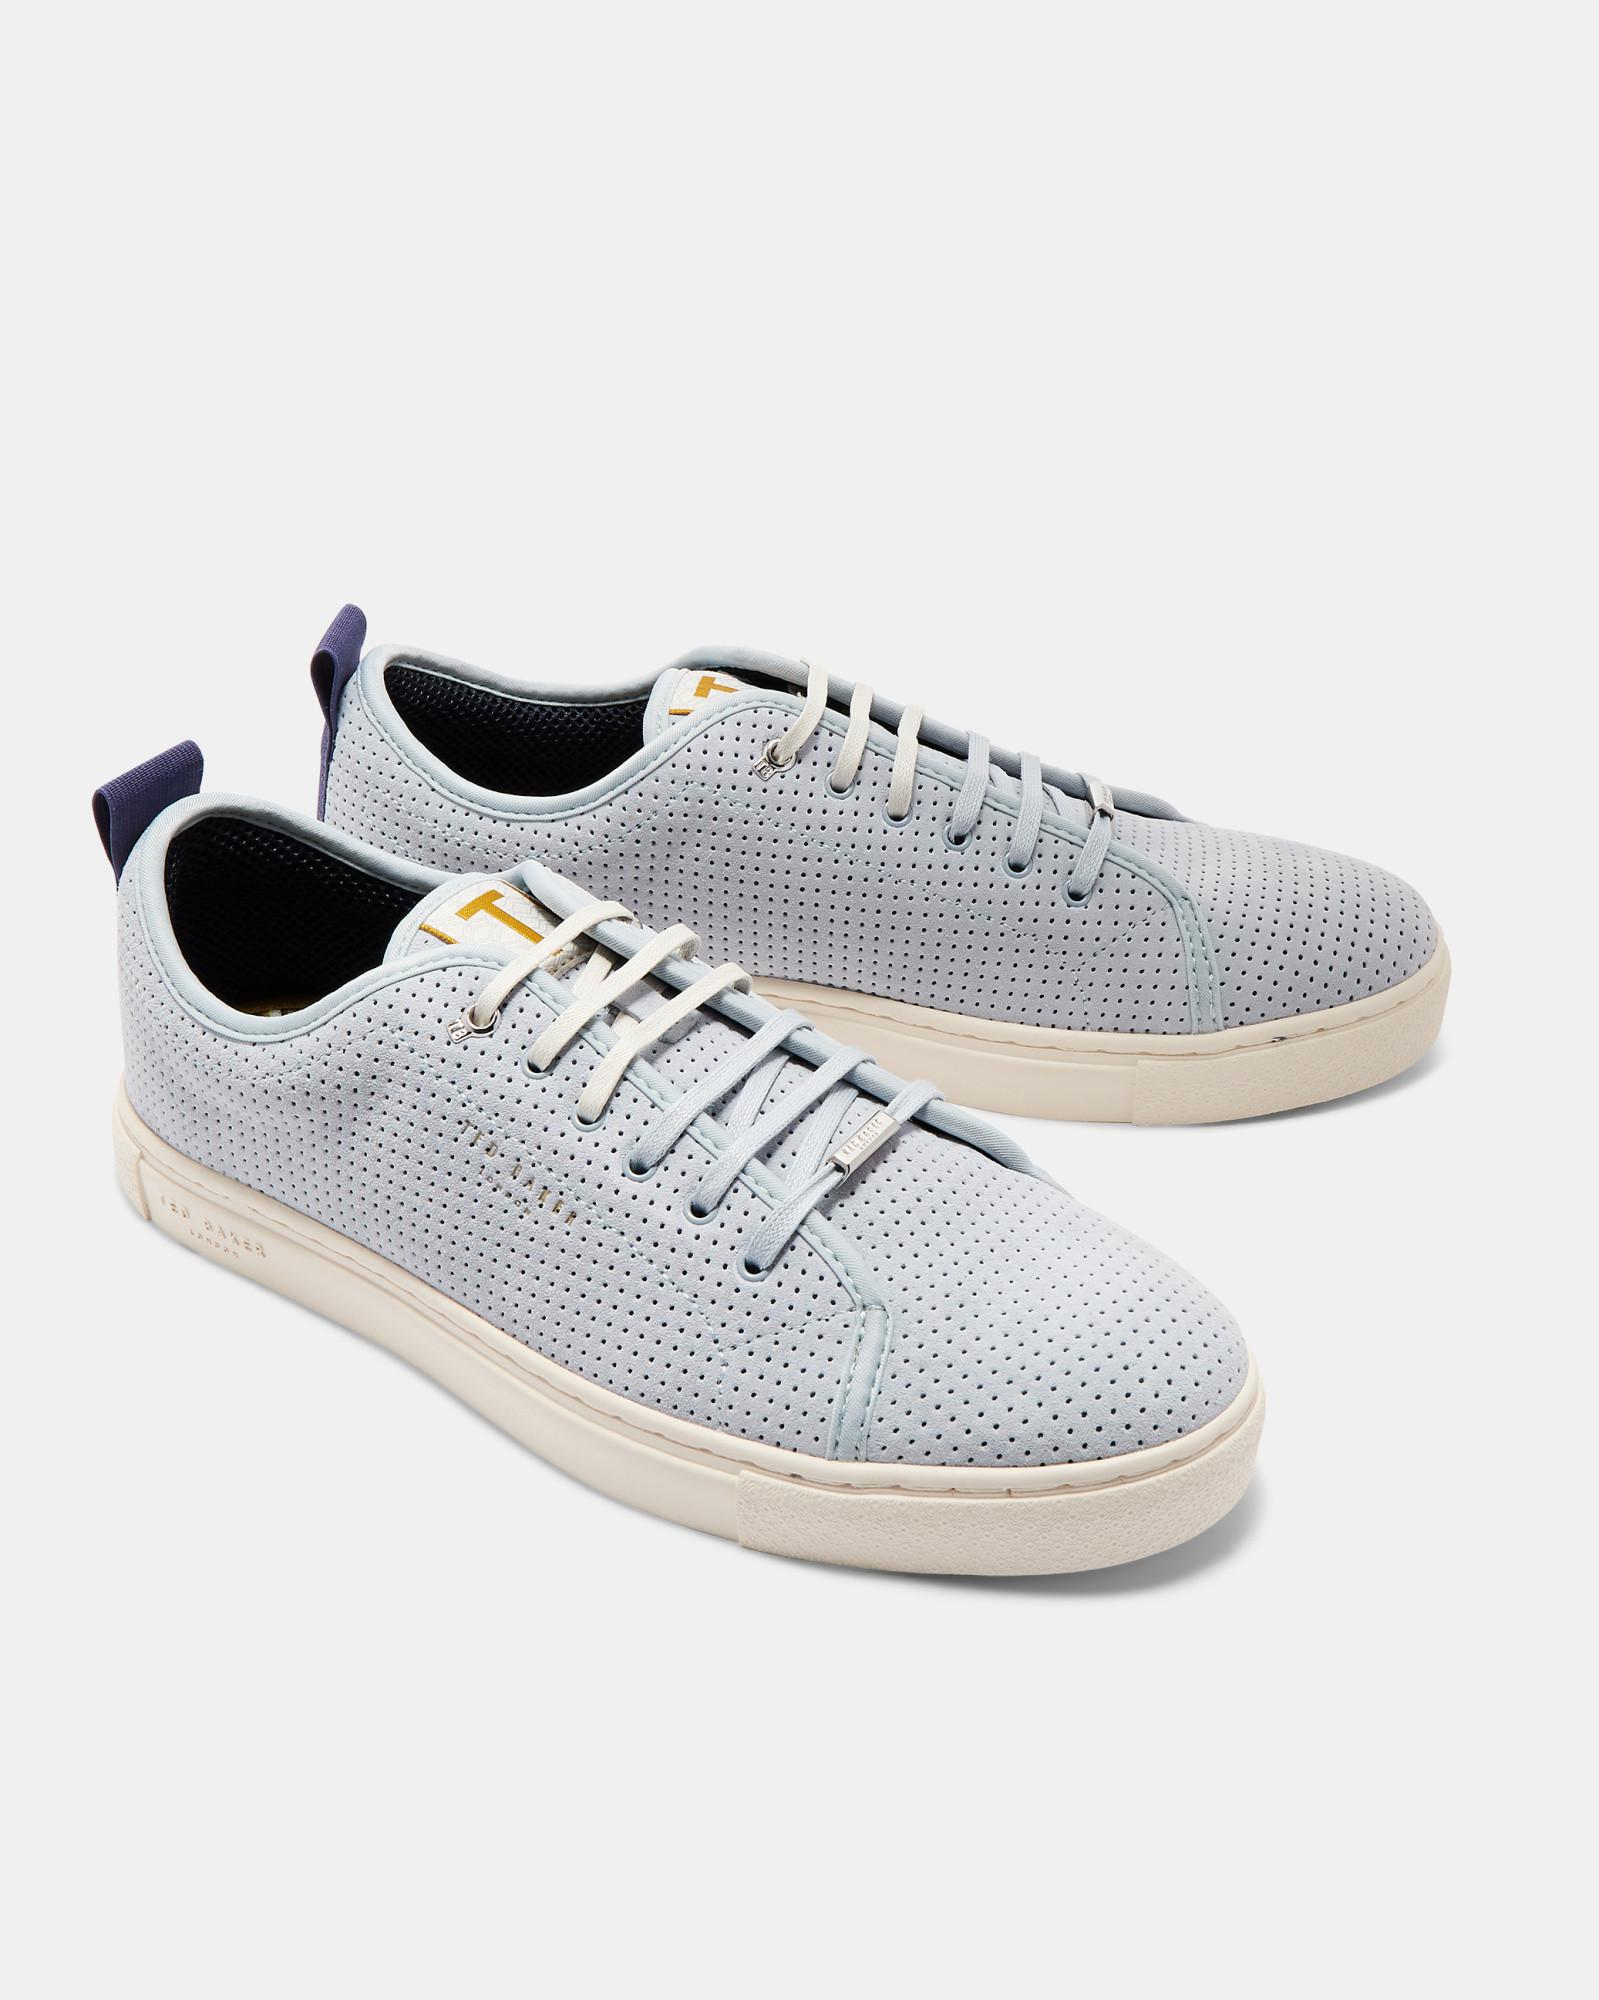 Ted Baker Suede Plimsole Trainers in Light Blue (Blue) for Men